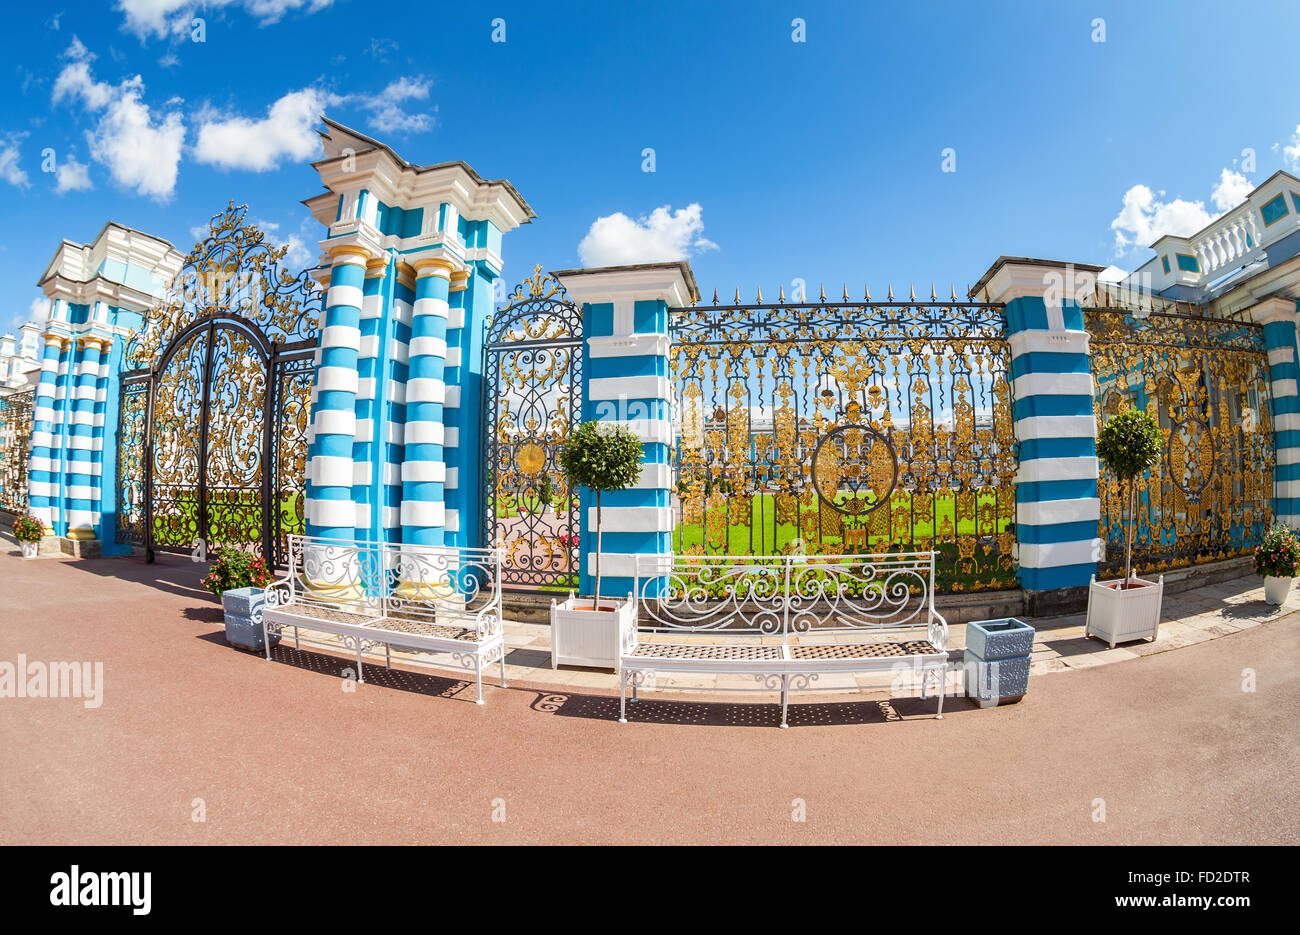 Openwork gate of Catherine Palace - the summer residence of the Russian tsars. - Stock Image